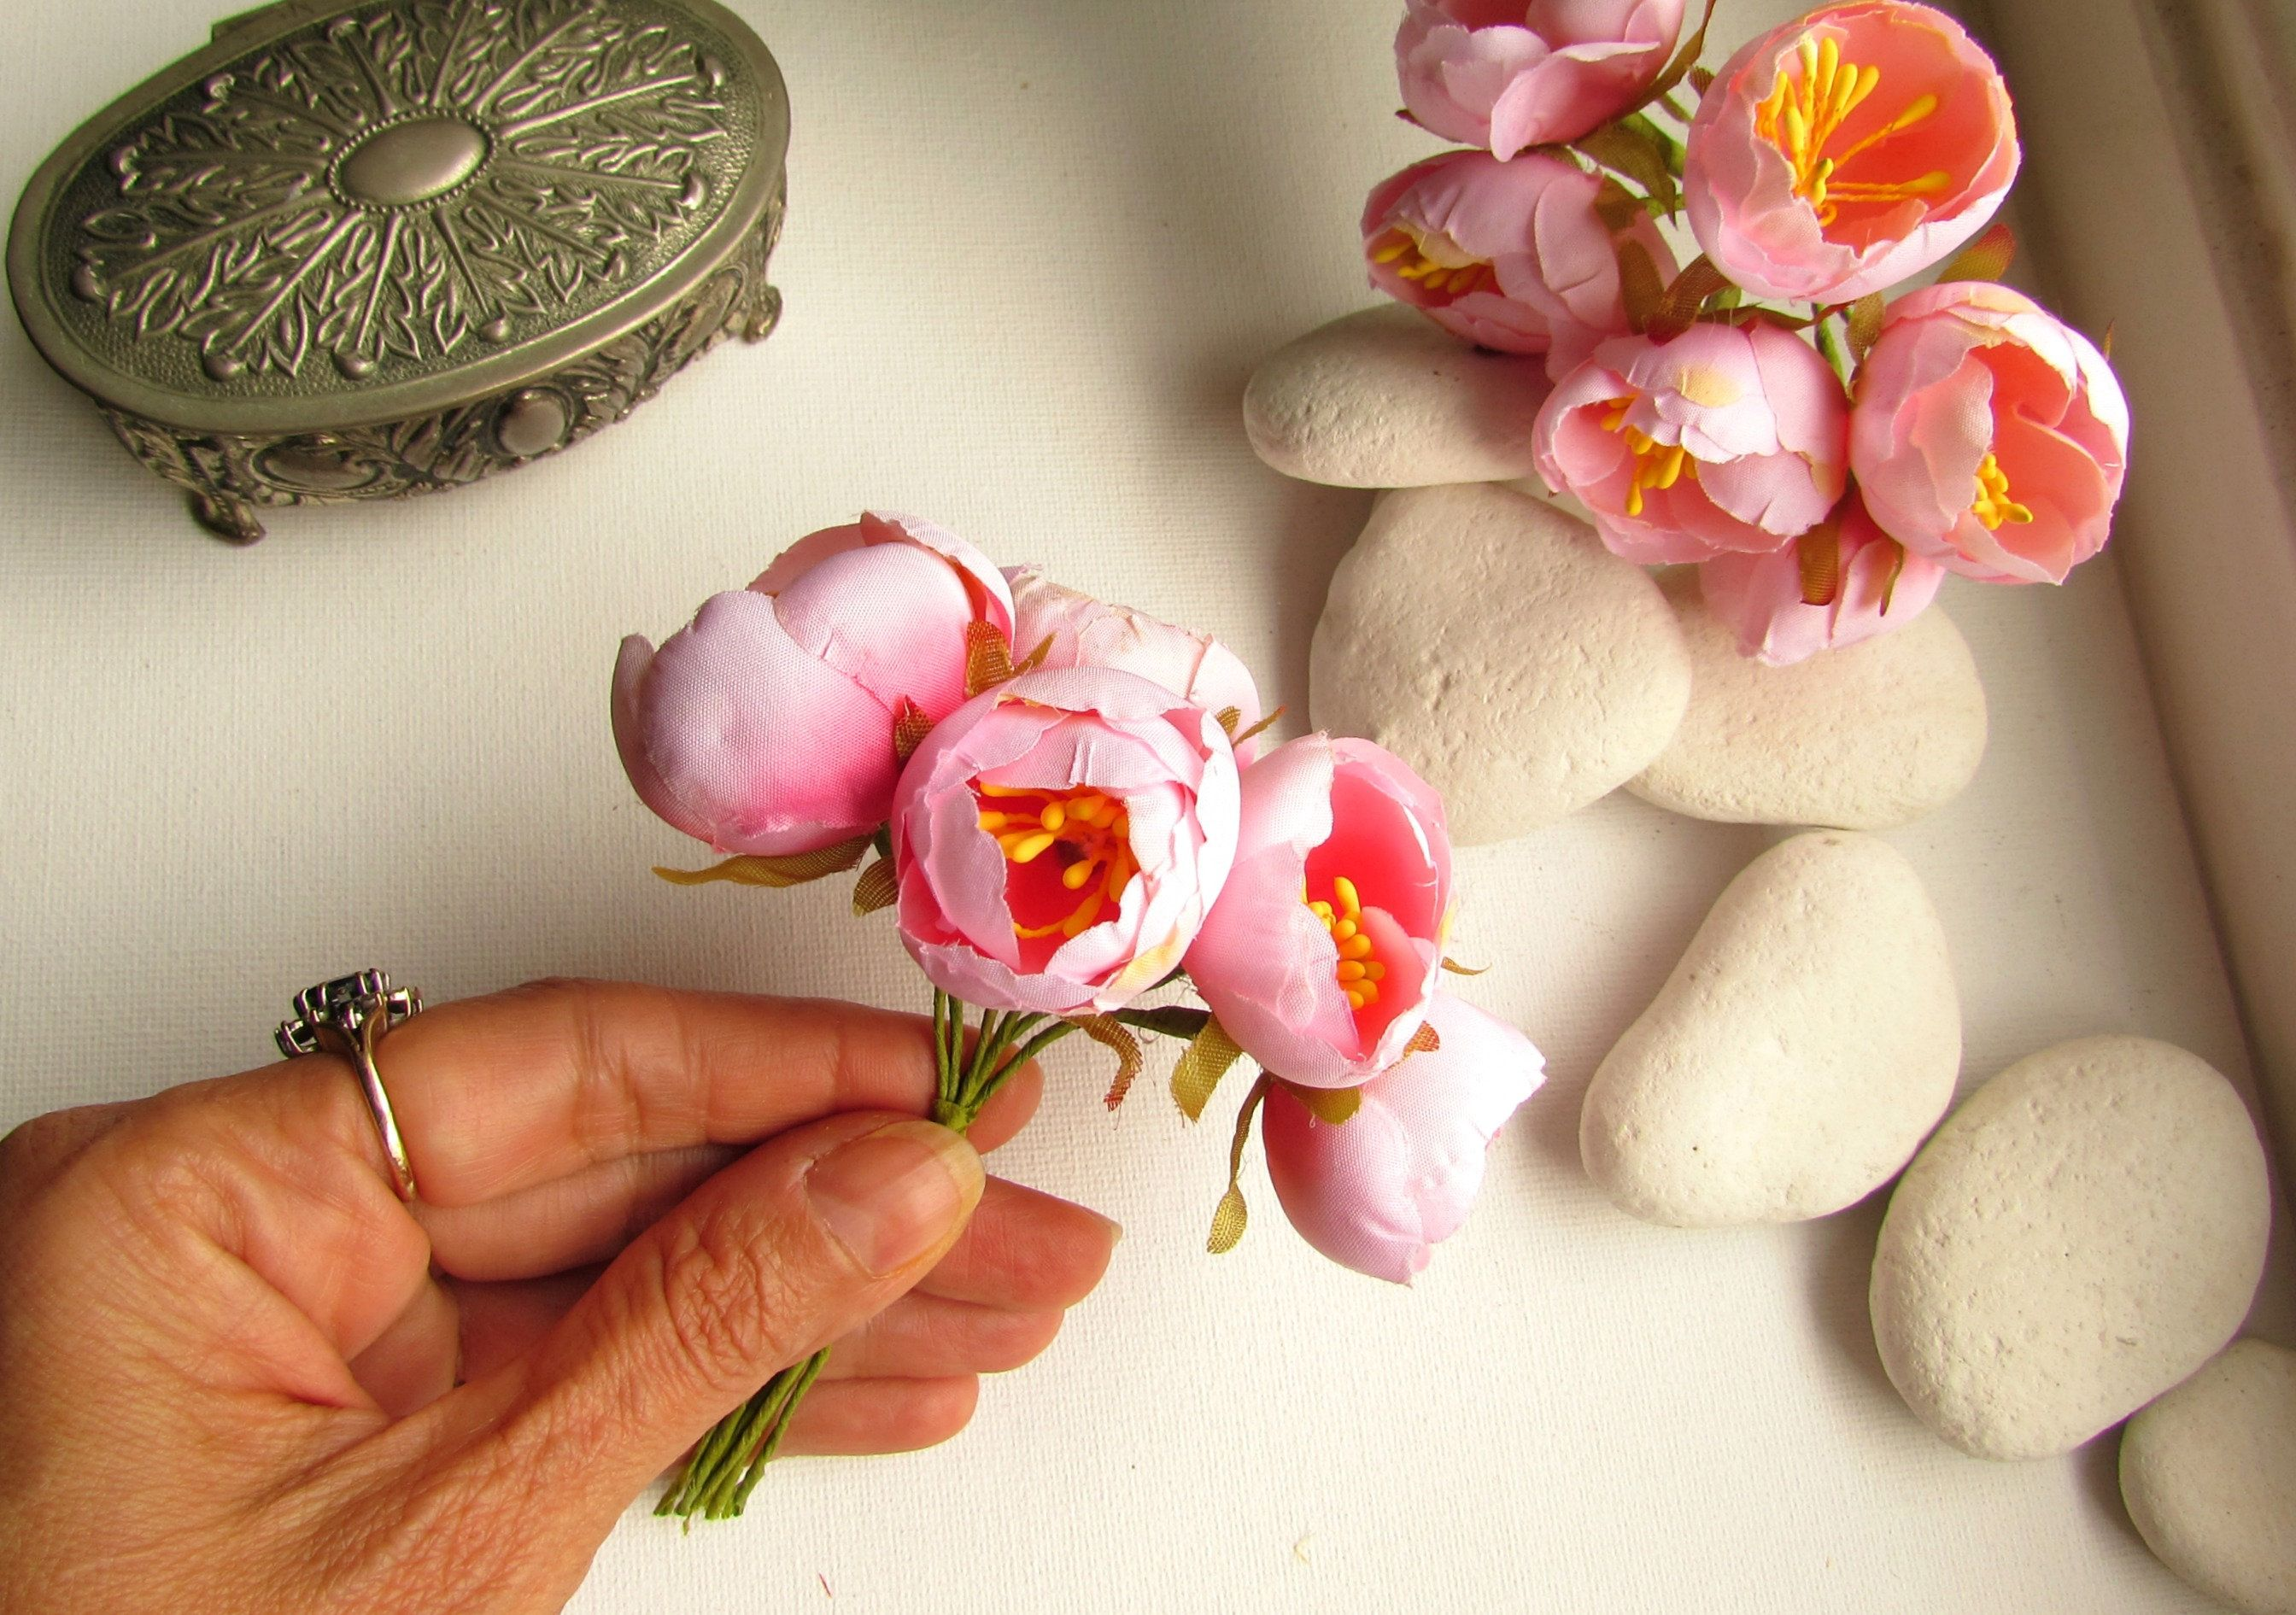 12 Small Artificial Cabbage Roses Blush Pink Peony Flower Etsy Small Flower Arrangements Pink Peonies Blossom Flower